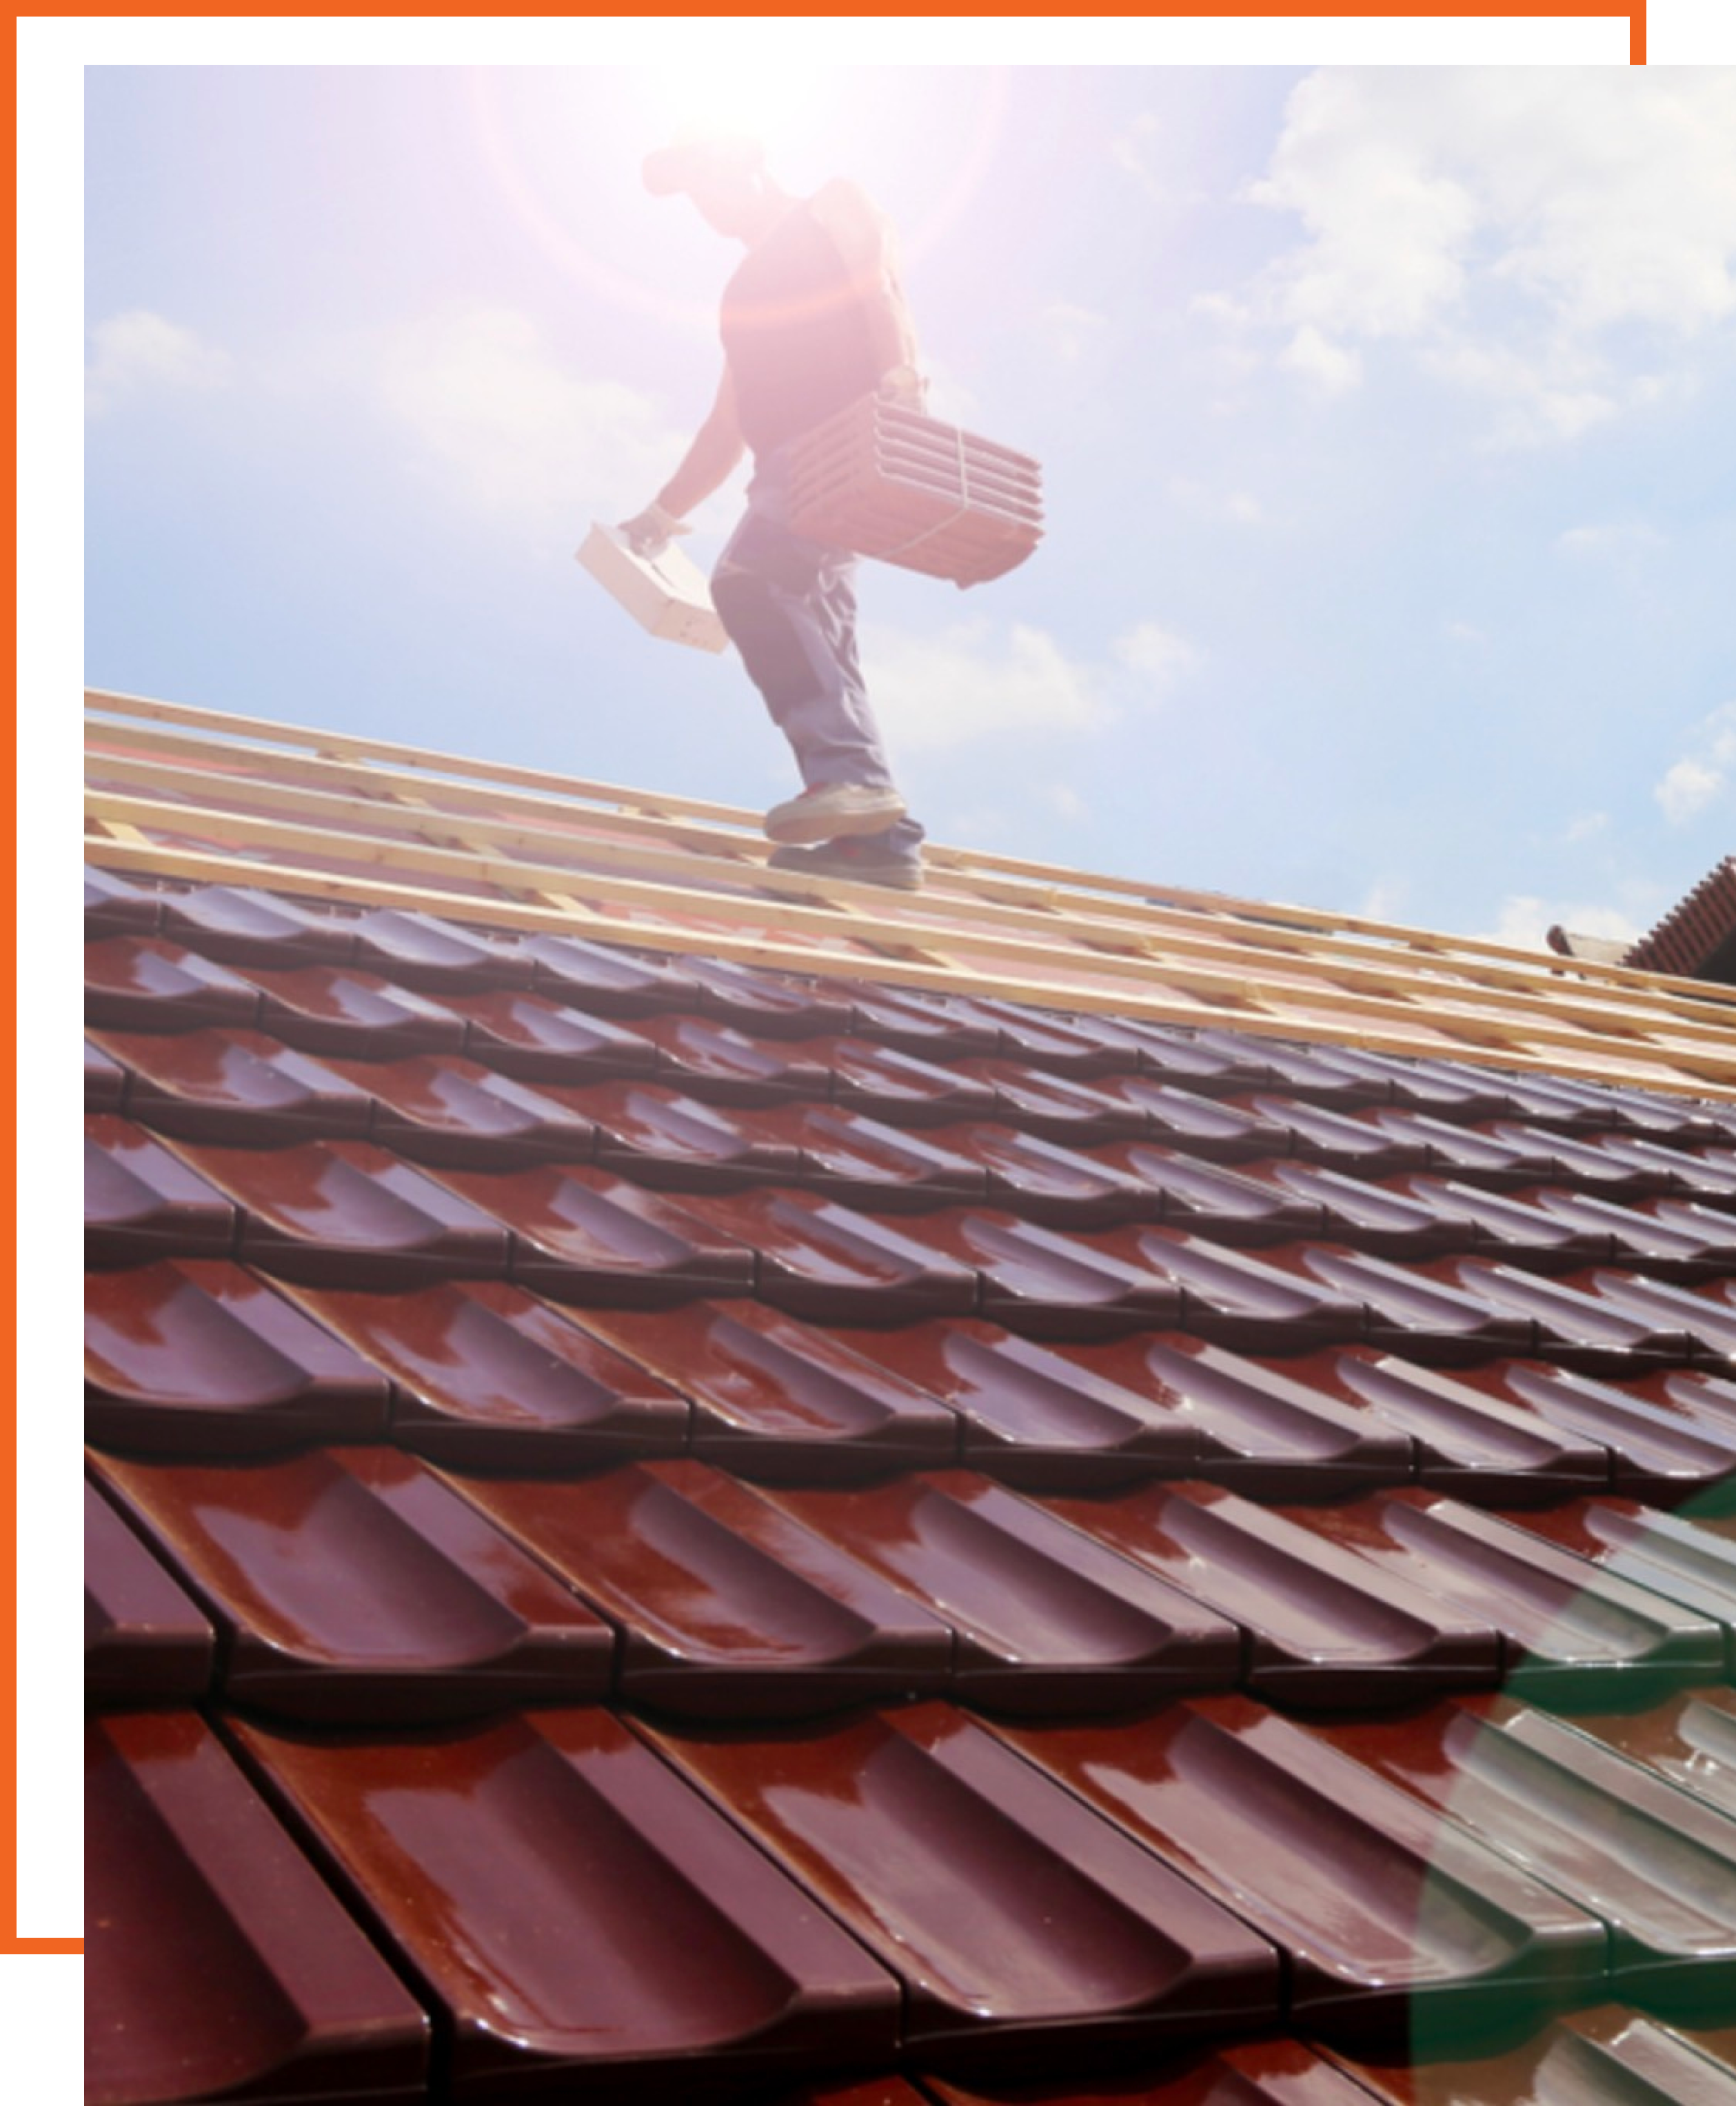 a roofer working on site on a sunny day with a decorative orange background